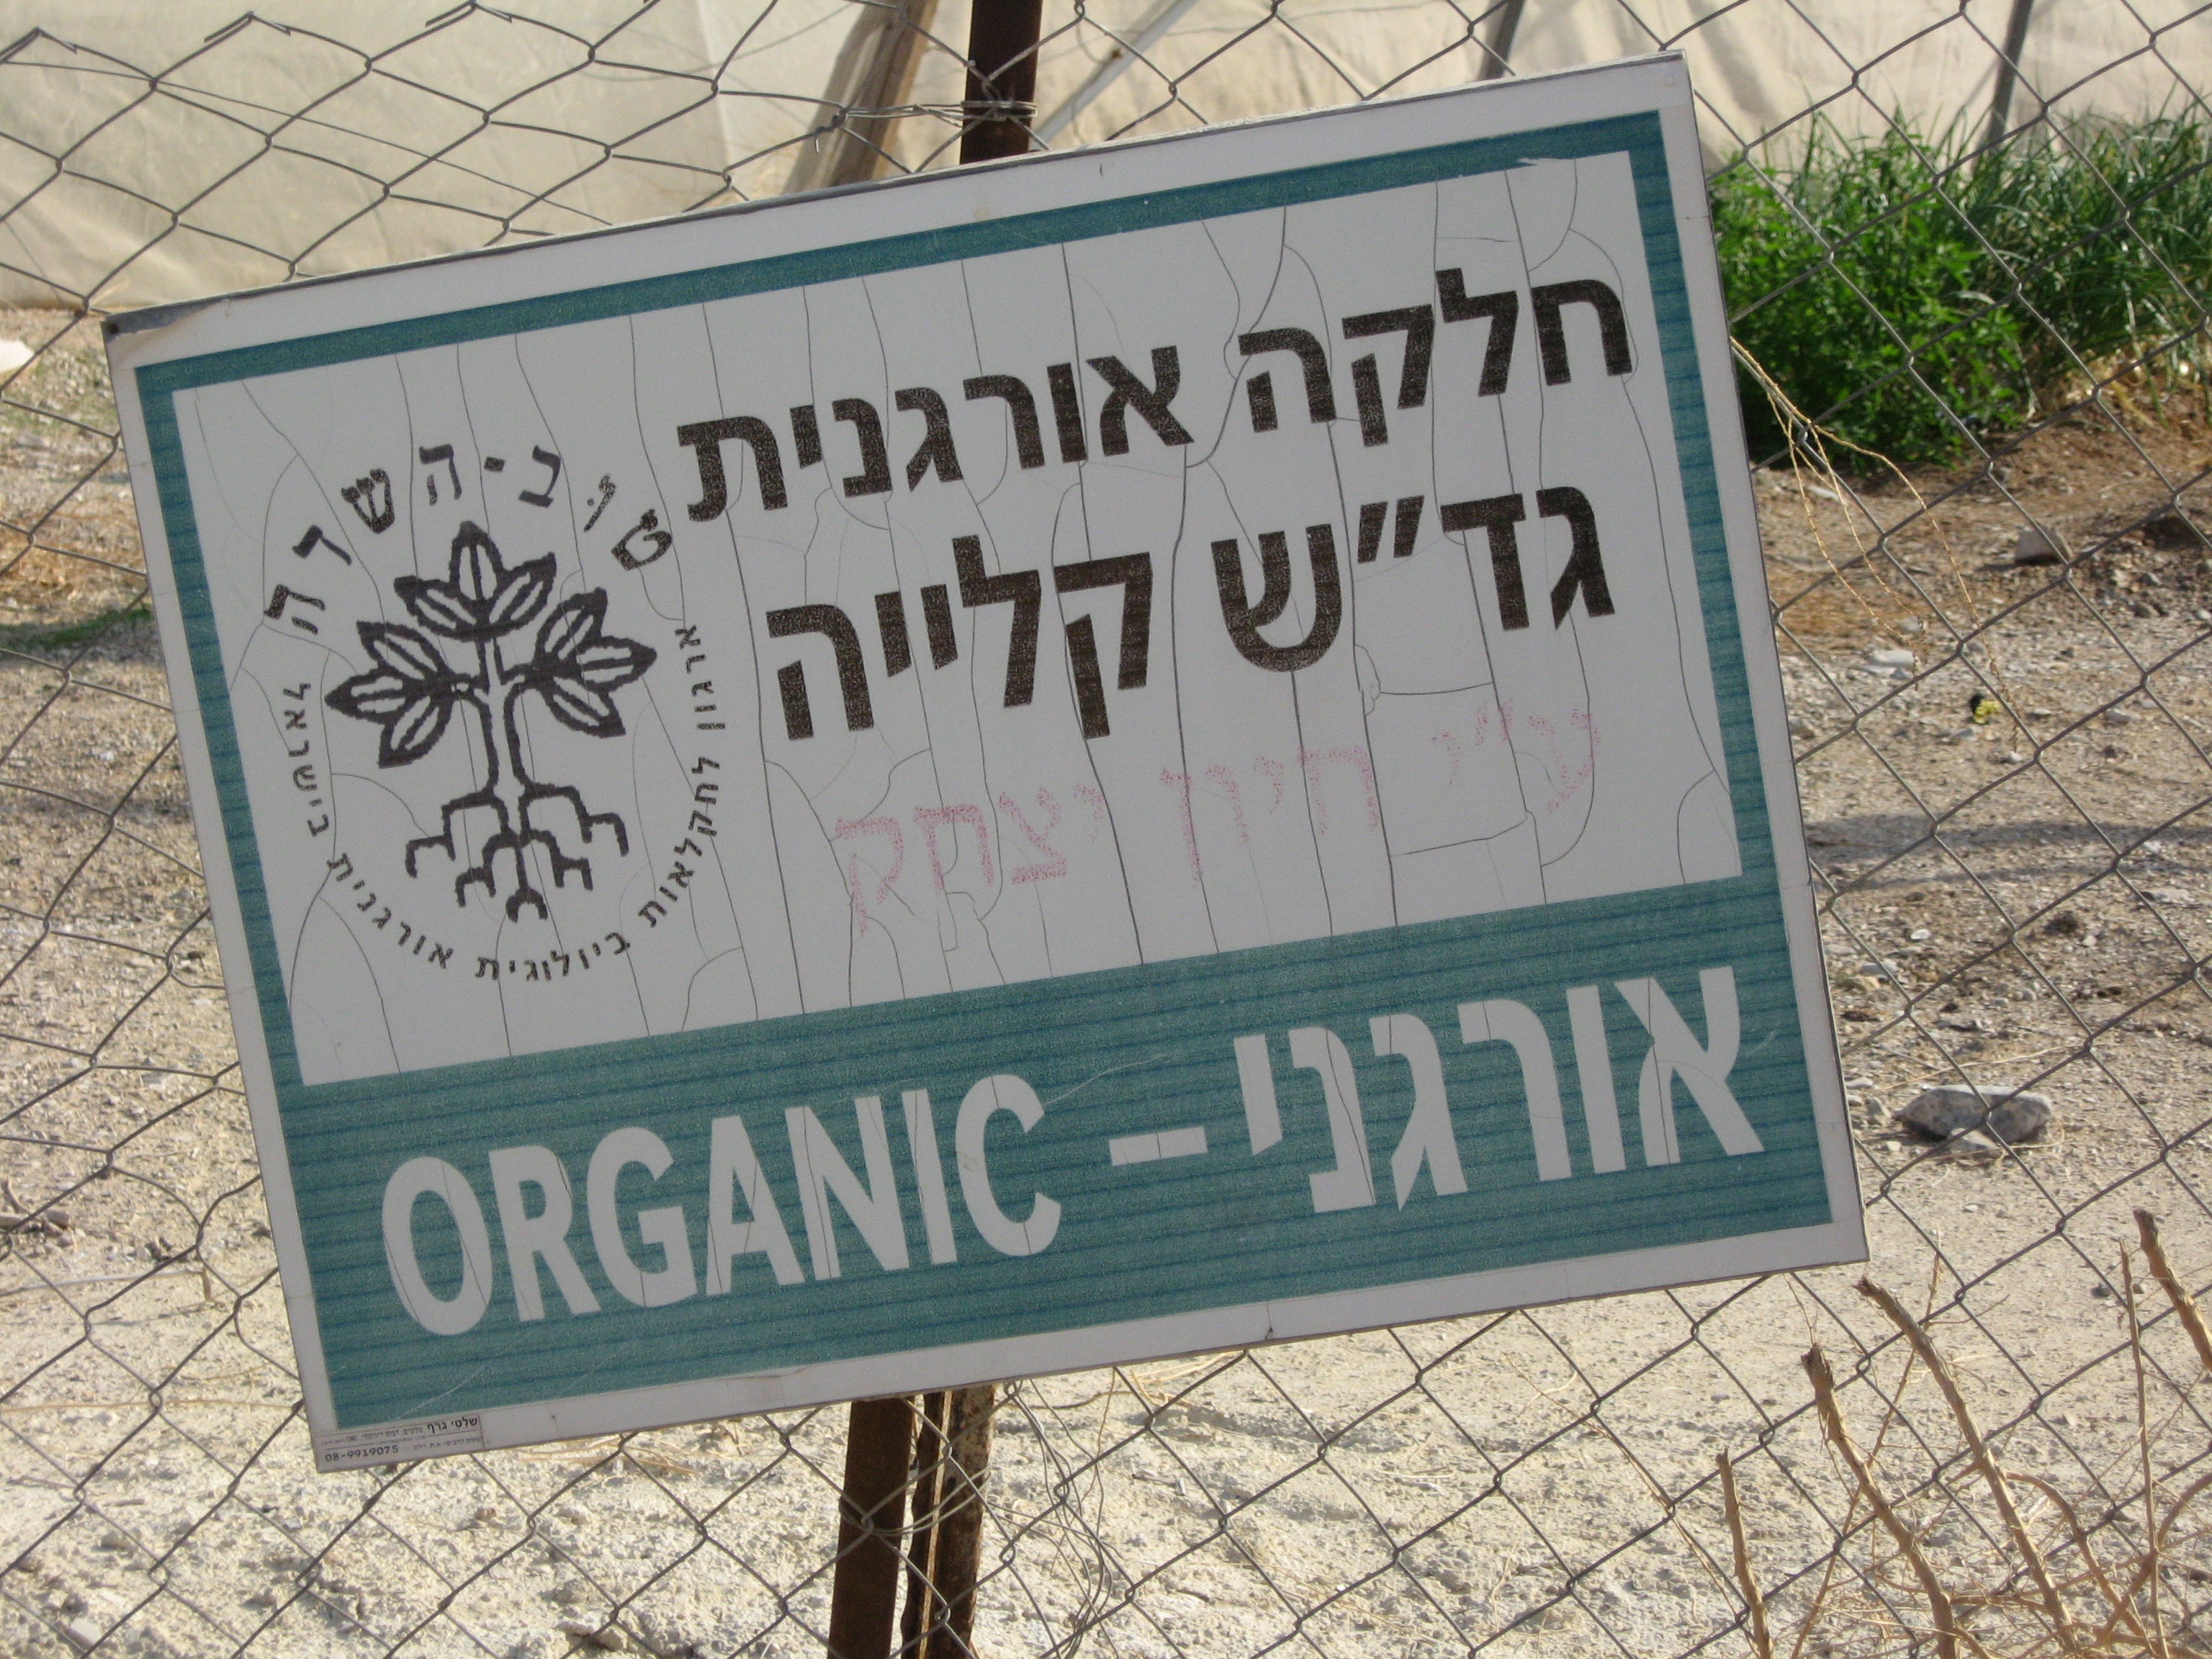 A sign for the Israel Bio Organic Association (IBOAA) in the fields of the illegal settlement of Kalia - photo taken by Corporate Watch researchers on 26/01/2013